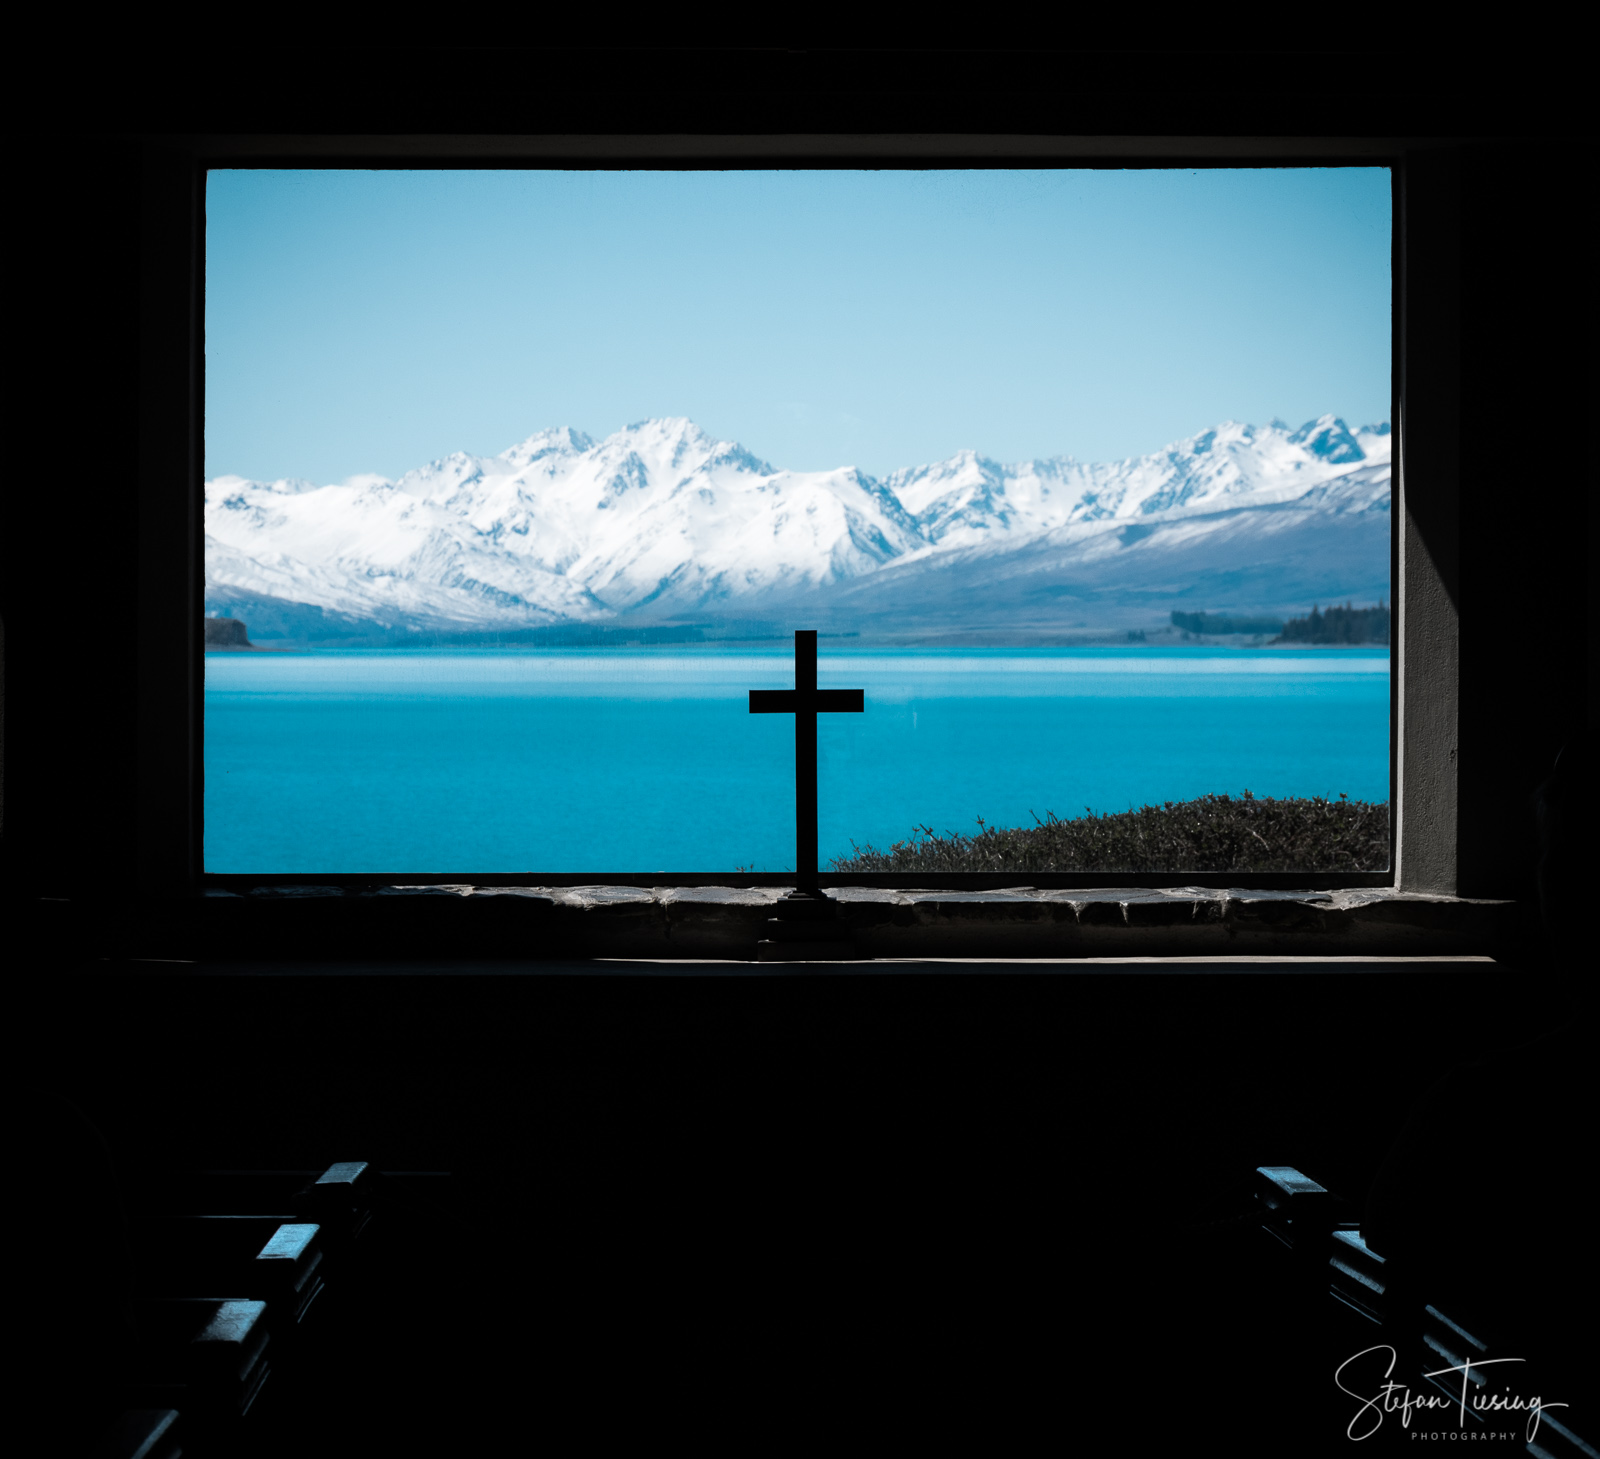 Church with a View